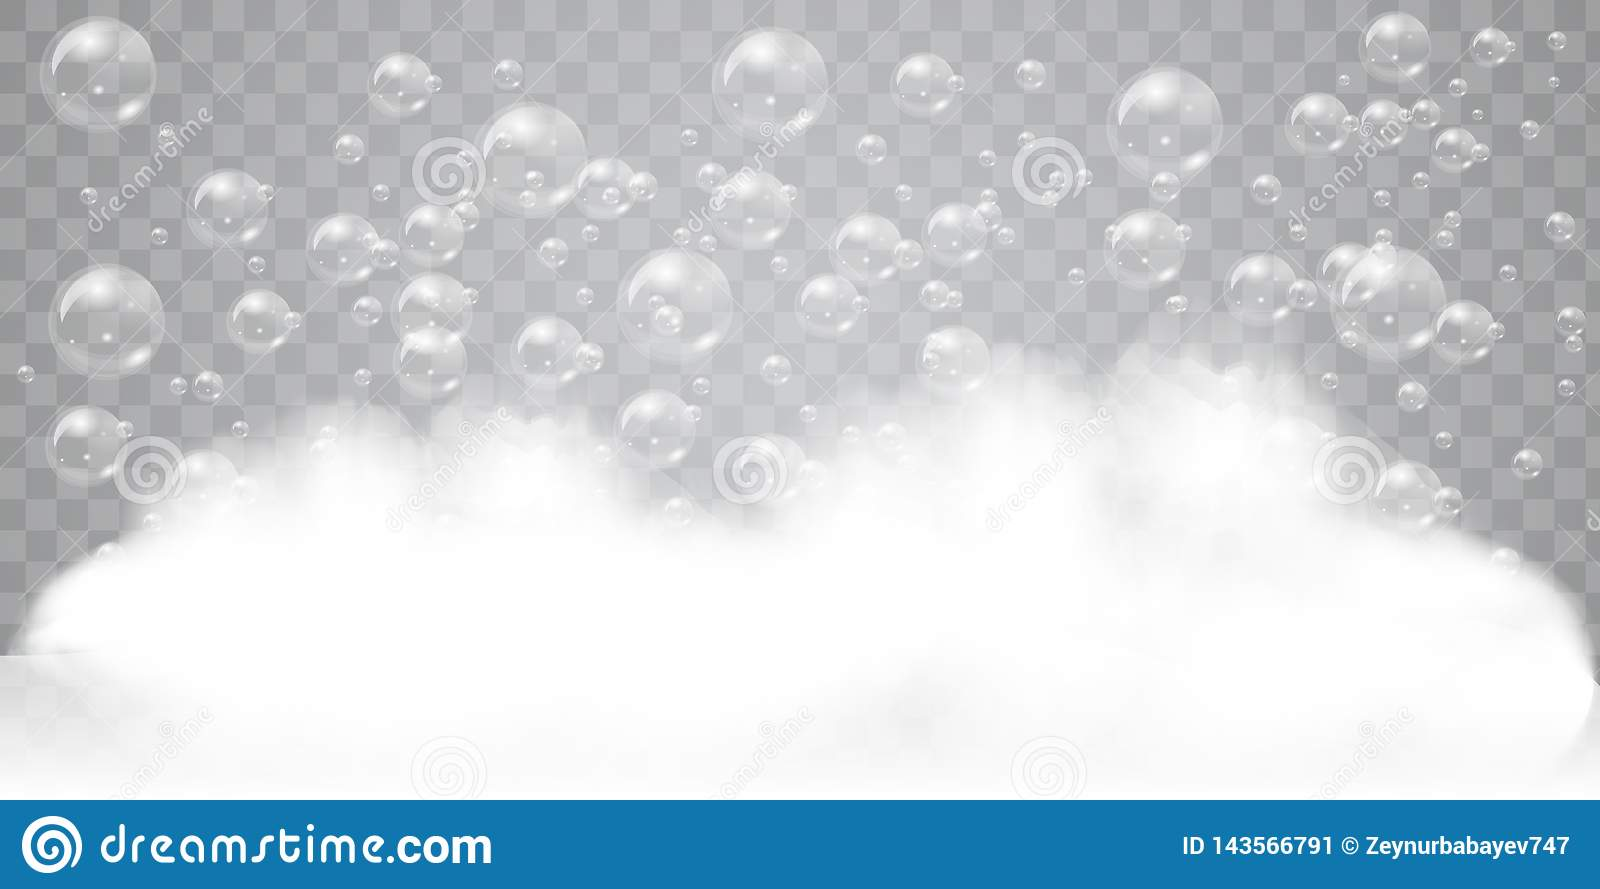 Soap foam with realistic bubbles background for your design. Bath laundry detergent or shampoo concept. Vector